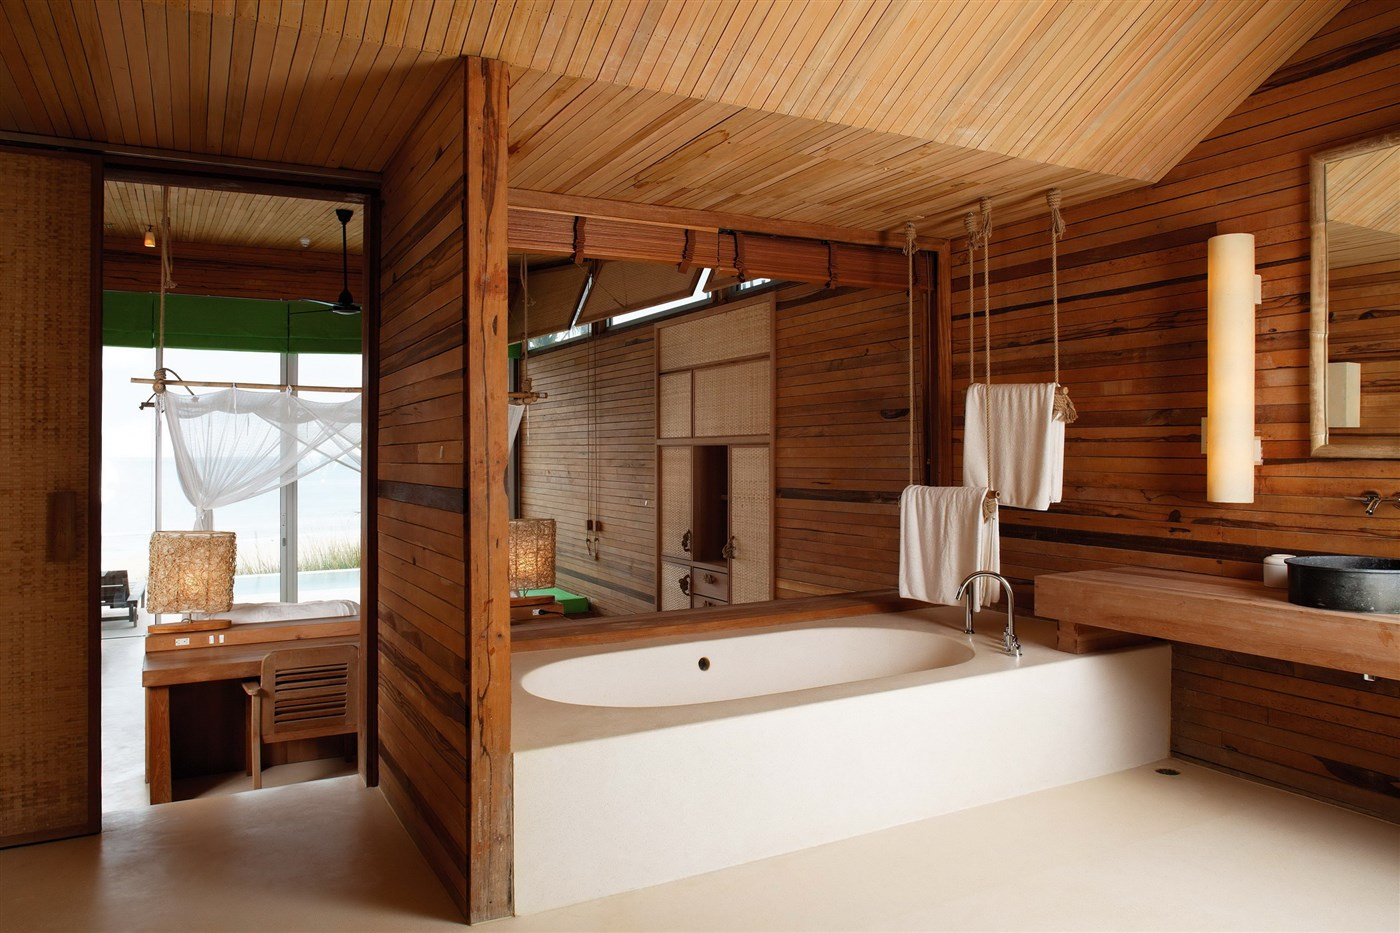 Wood bathroom design ideas with screen